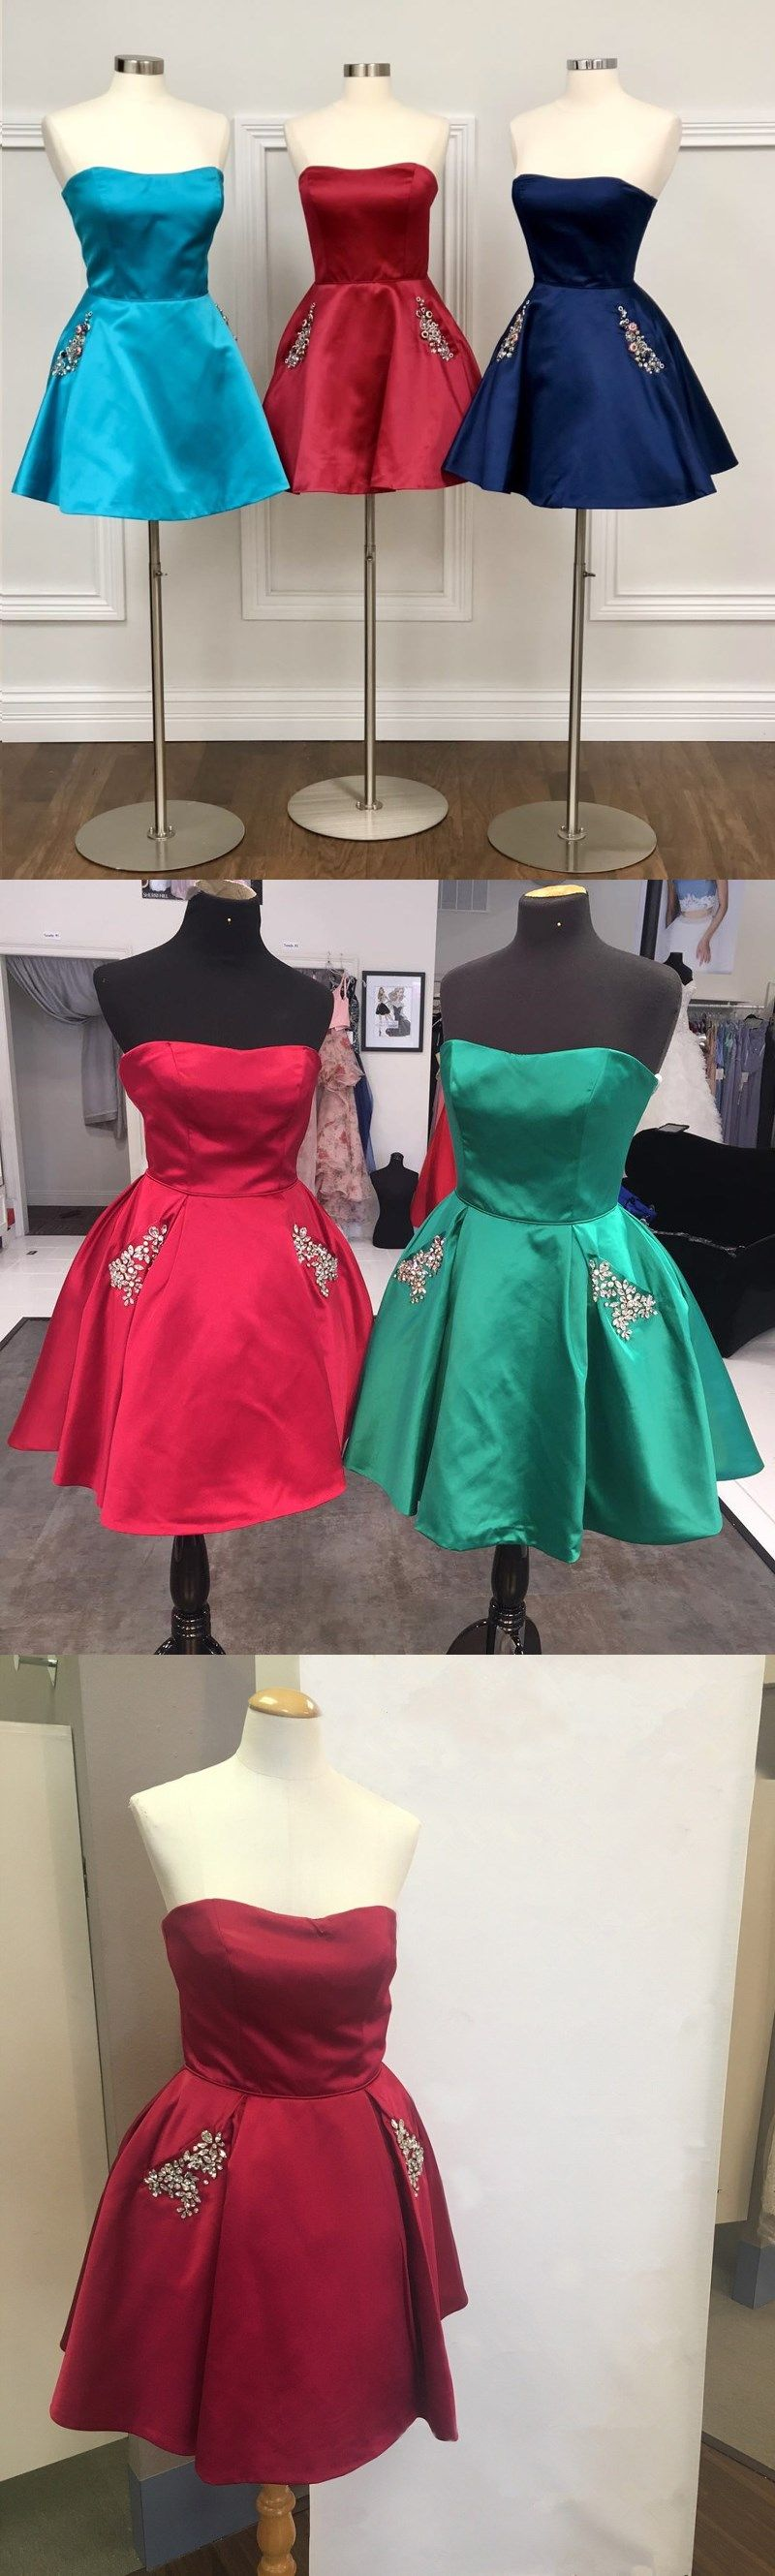 Cute homecoming dresses strapless rhinestone short prom dress with